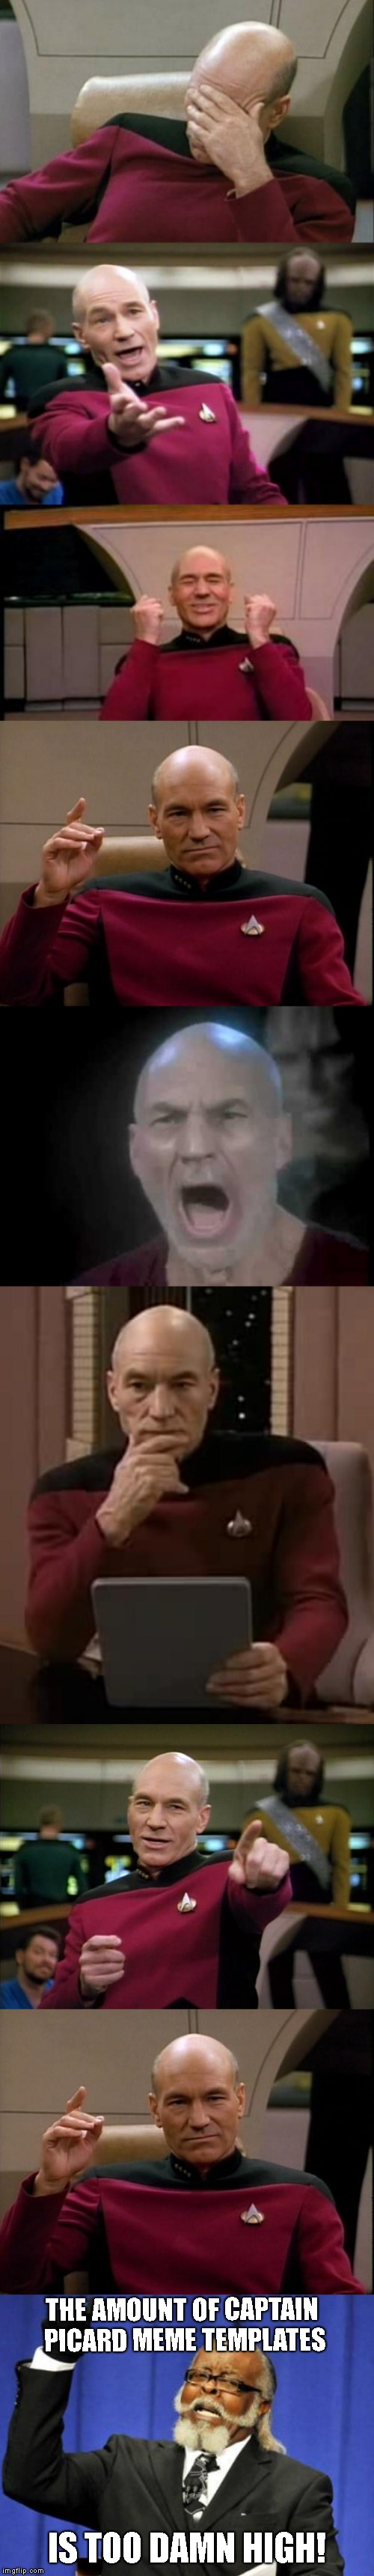 Too Damn High | THE AMOUNT OF CAPTAIN PICARD MEME TEMPLATES IS TOO DAMN HIGH! | image tagged in memes,too damn high,picard wtf,captain picard facepalm,picard,happy picard | made w/ Imgflip meme maker